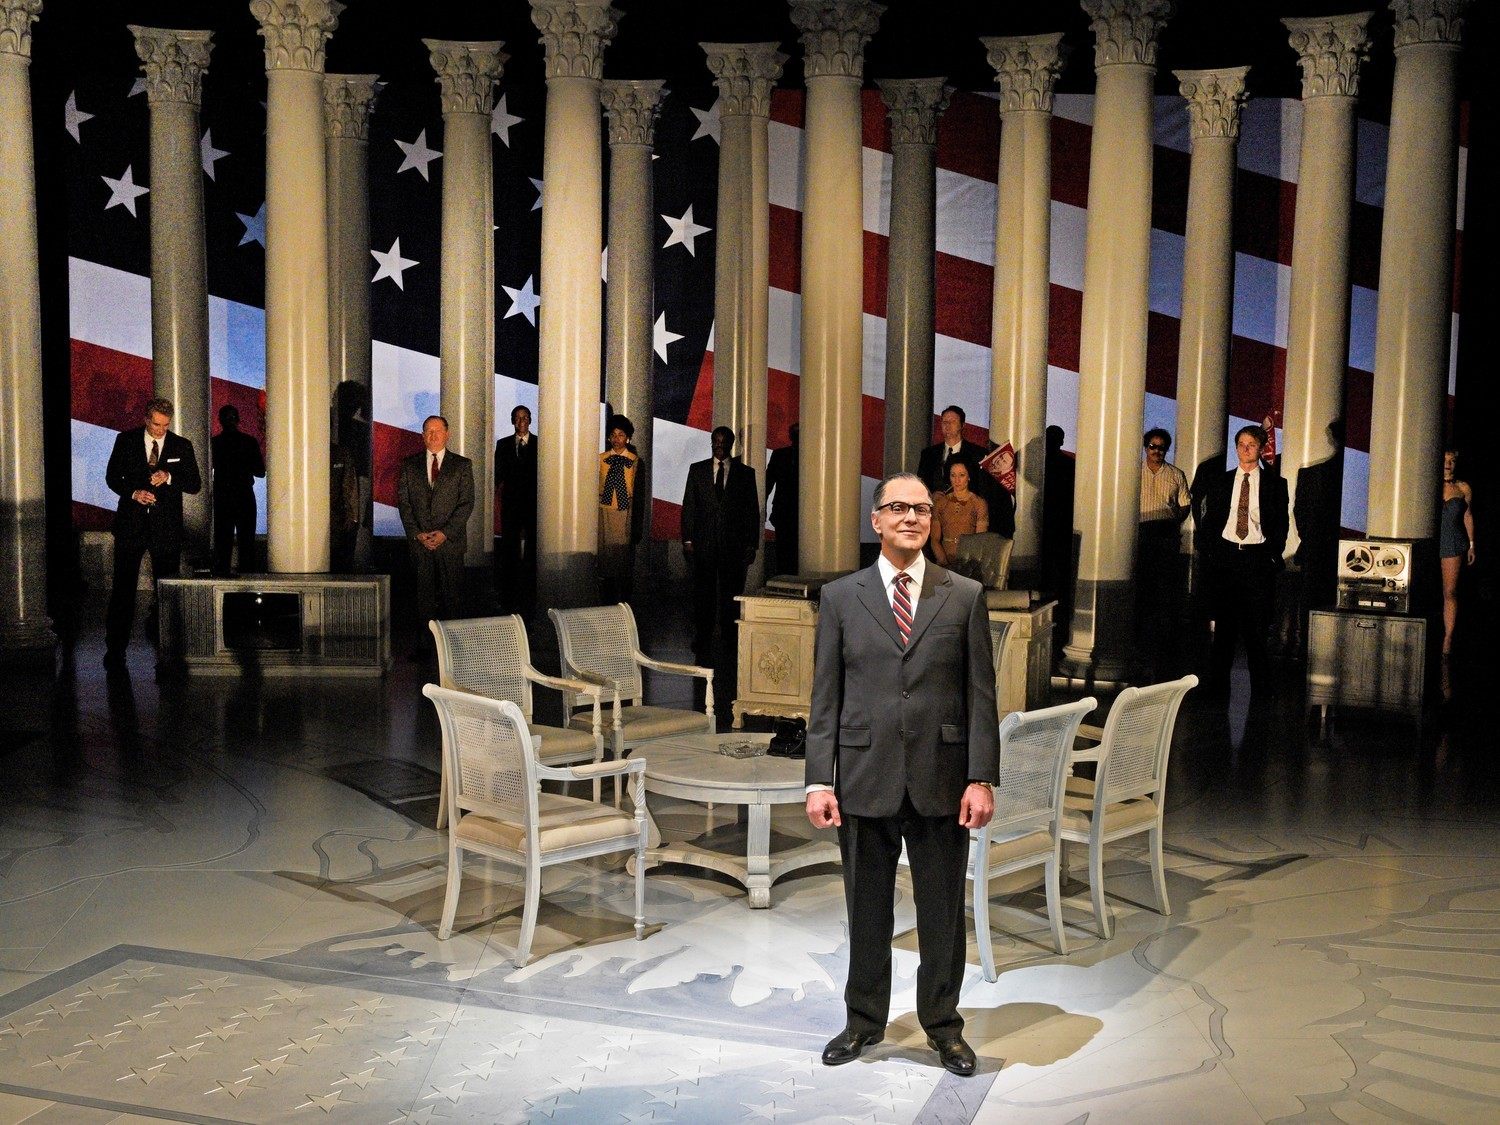 BWW Review: THE GREAT SOCIETY Shines at Dallas Theater Center